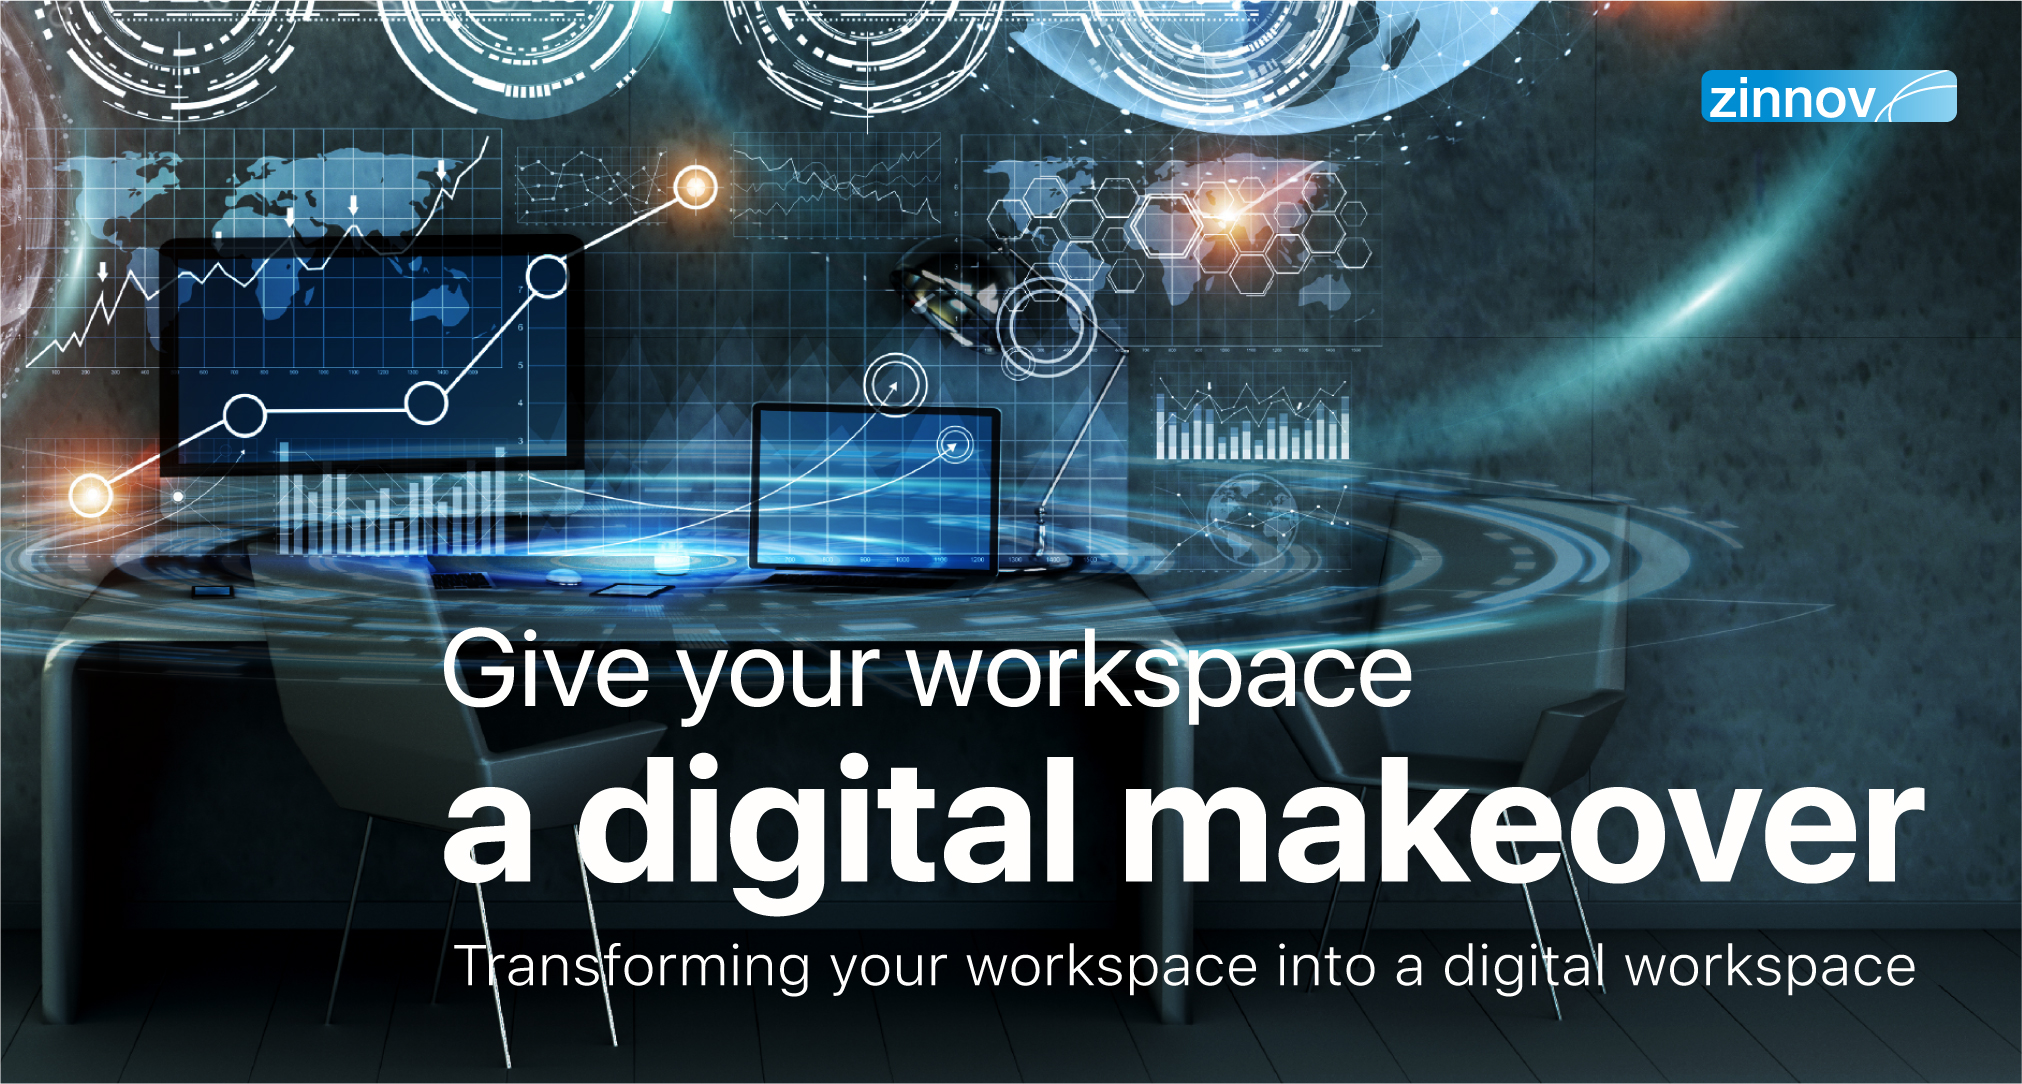 Digital Workspaces: Taking Workspaces A Notch Higher By Transforming Them